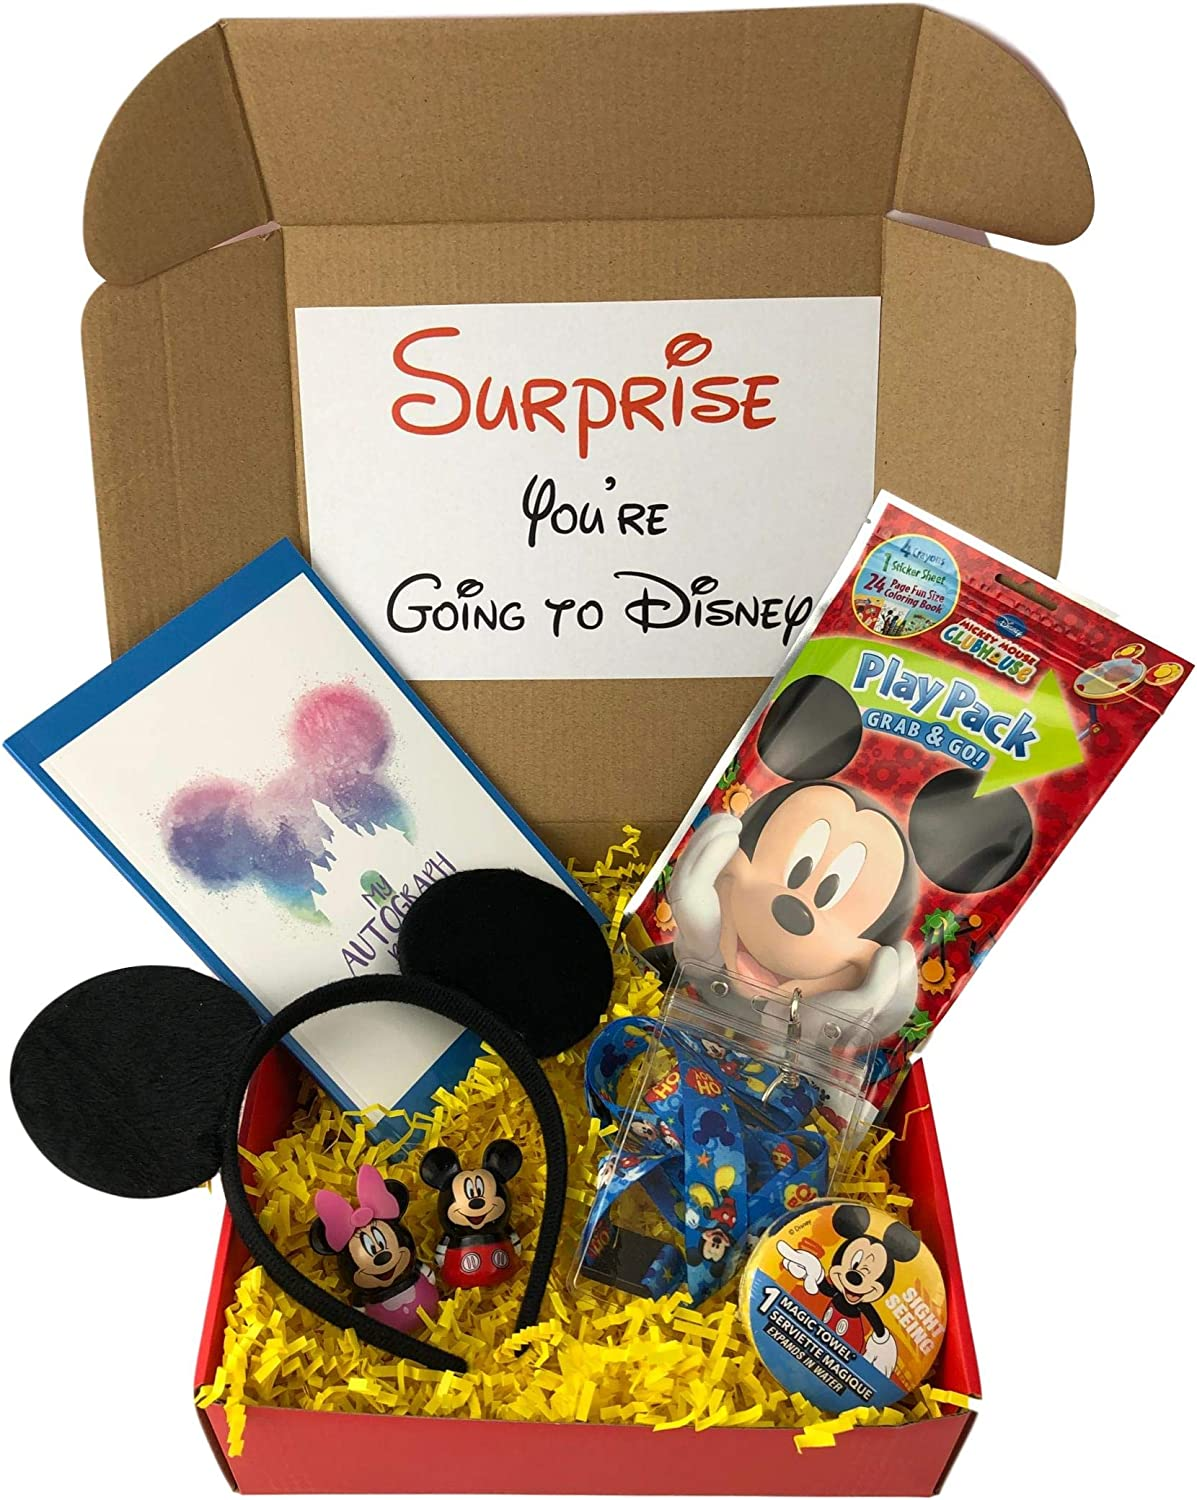 KKC Deluxe Mickey Vacation Gift for Boys with Park Accessories Including Ears and Autograph Book Red